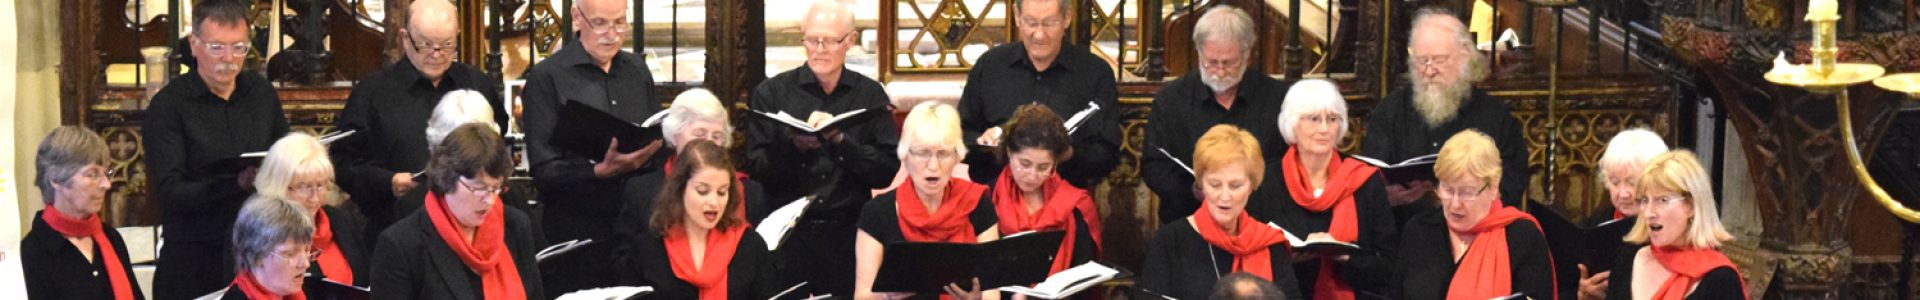 An Autumn Serenade,  The Elgar Chorale and Trianon Music Group